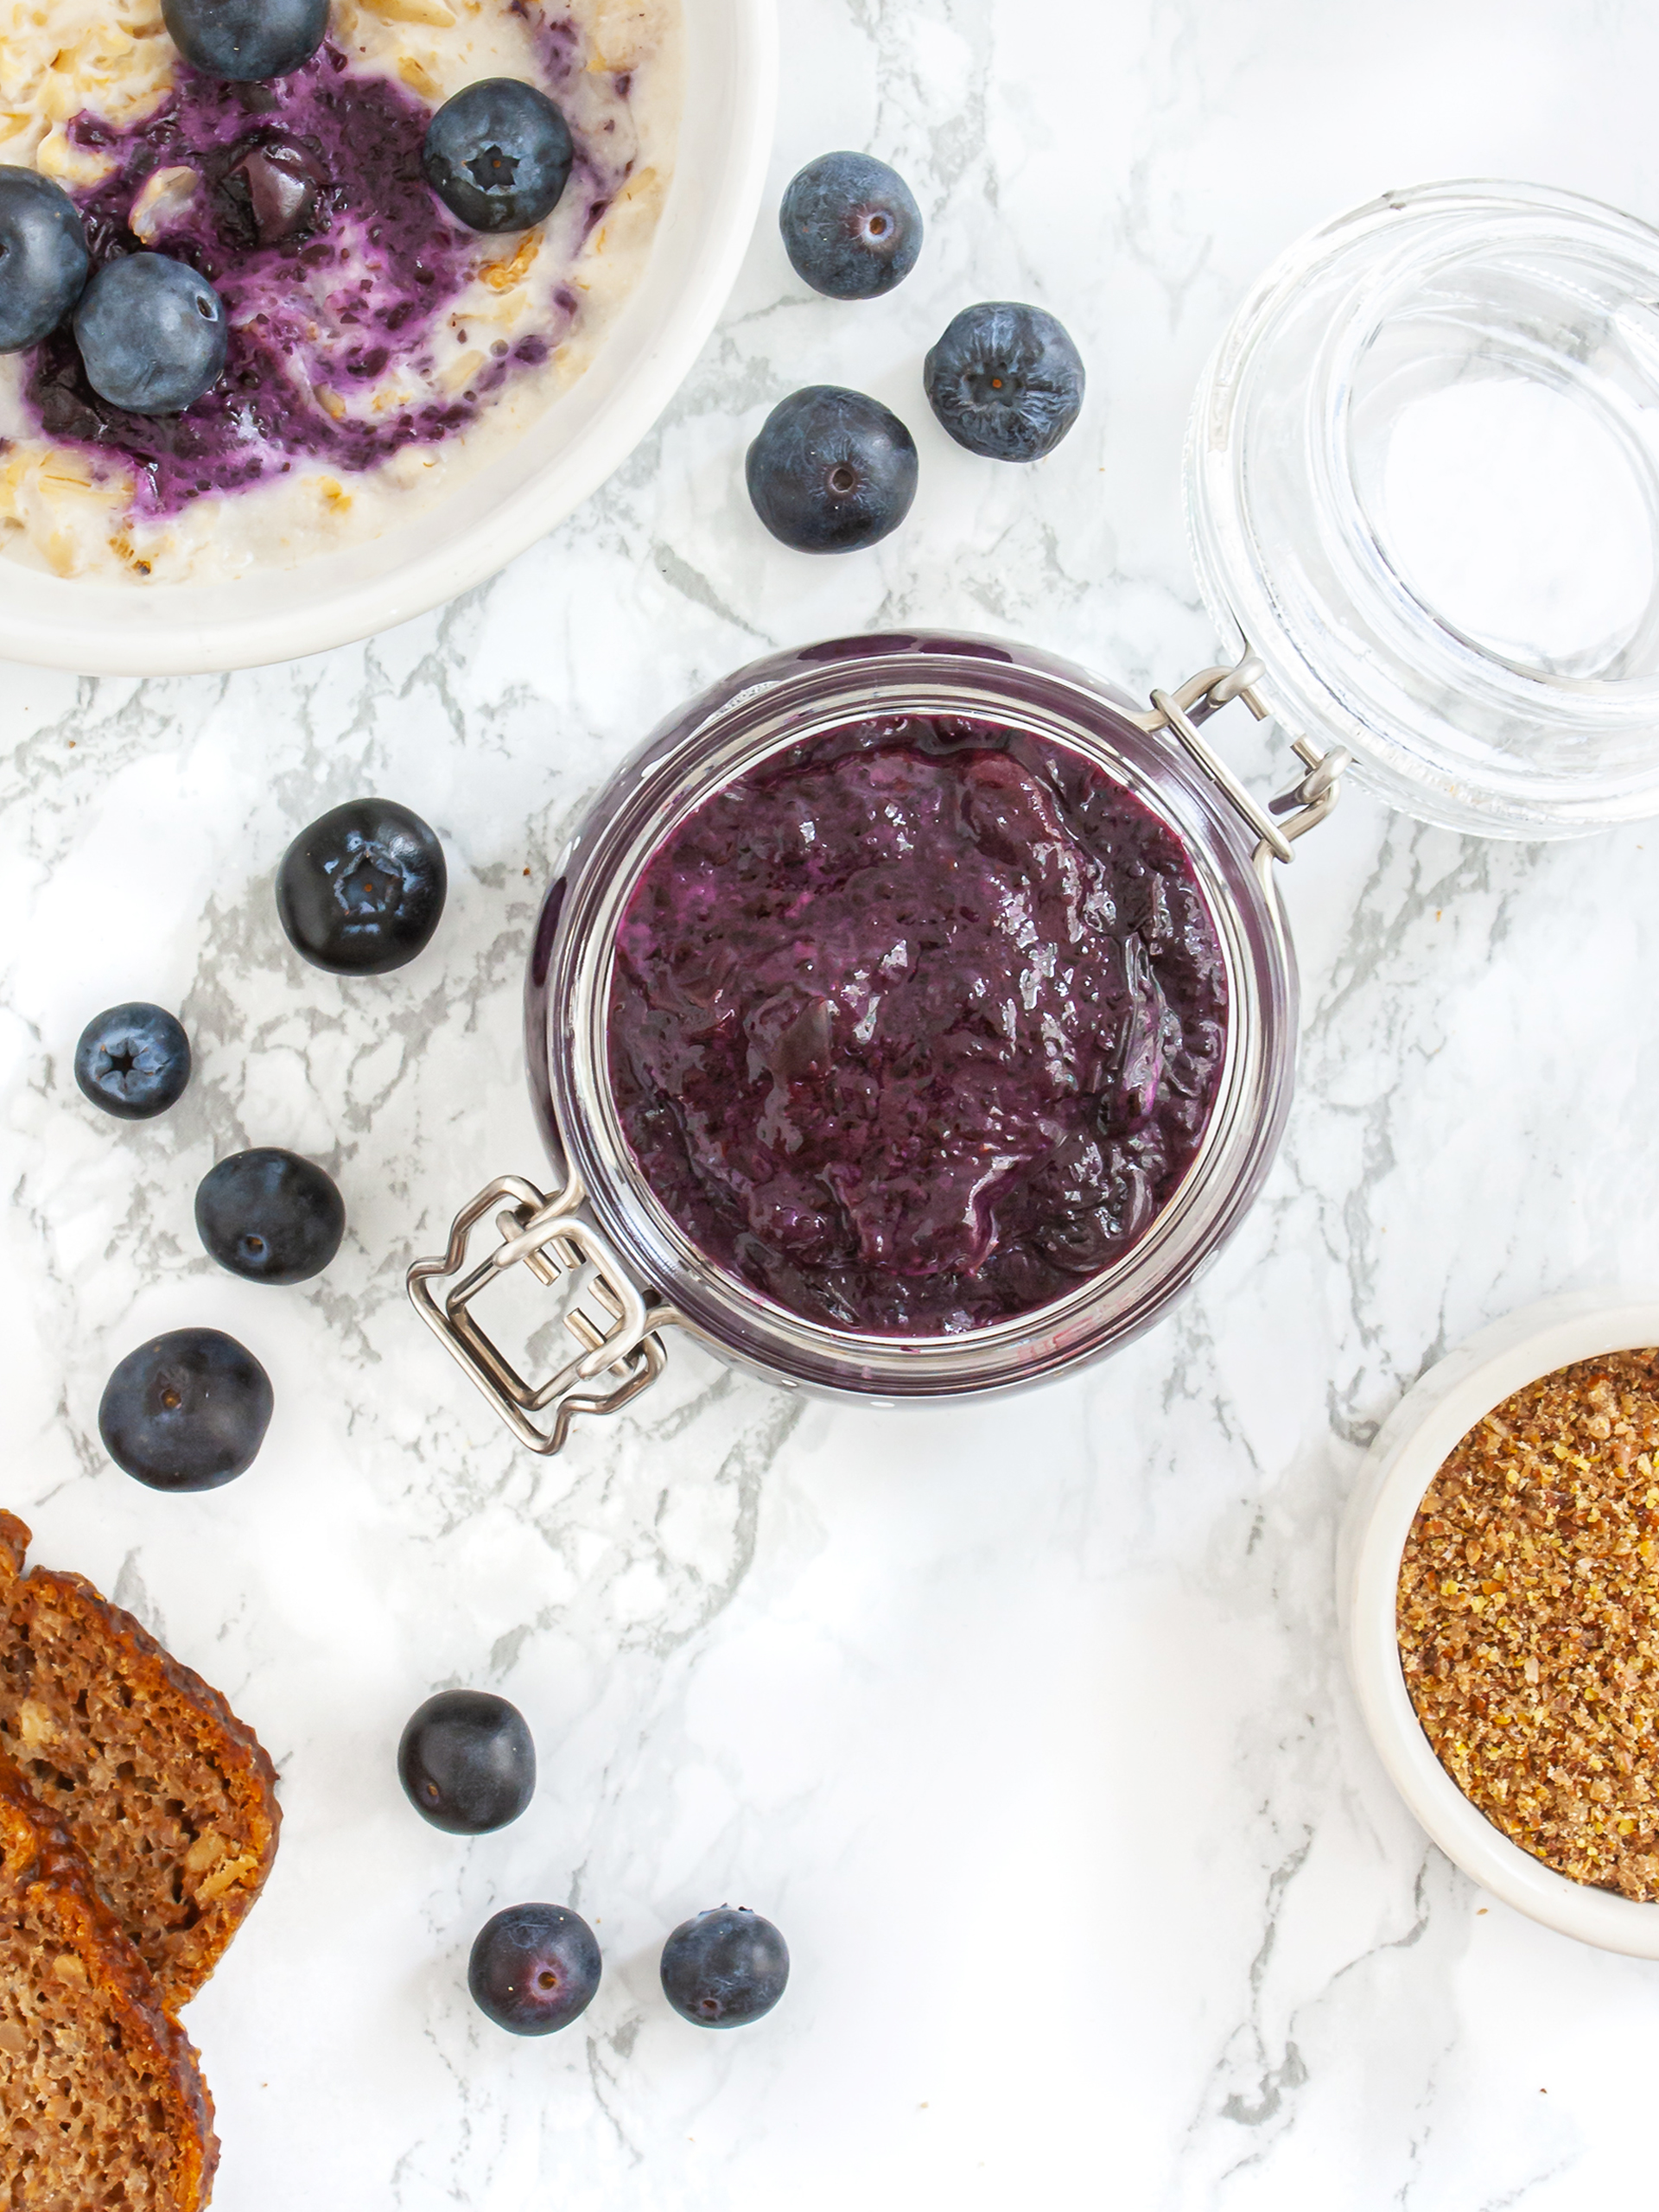 Sugar Free Blueberry Jam Recipe with Flaxseeds Thumbnail